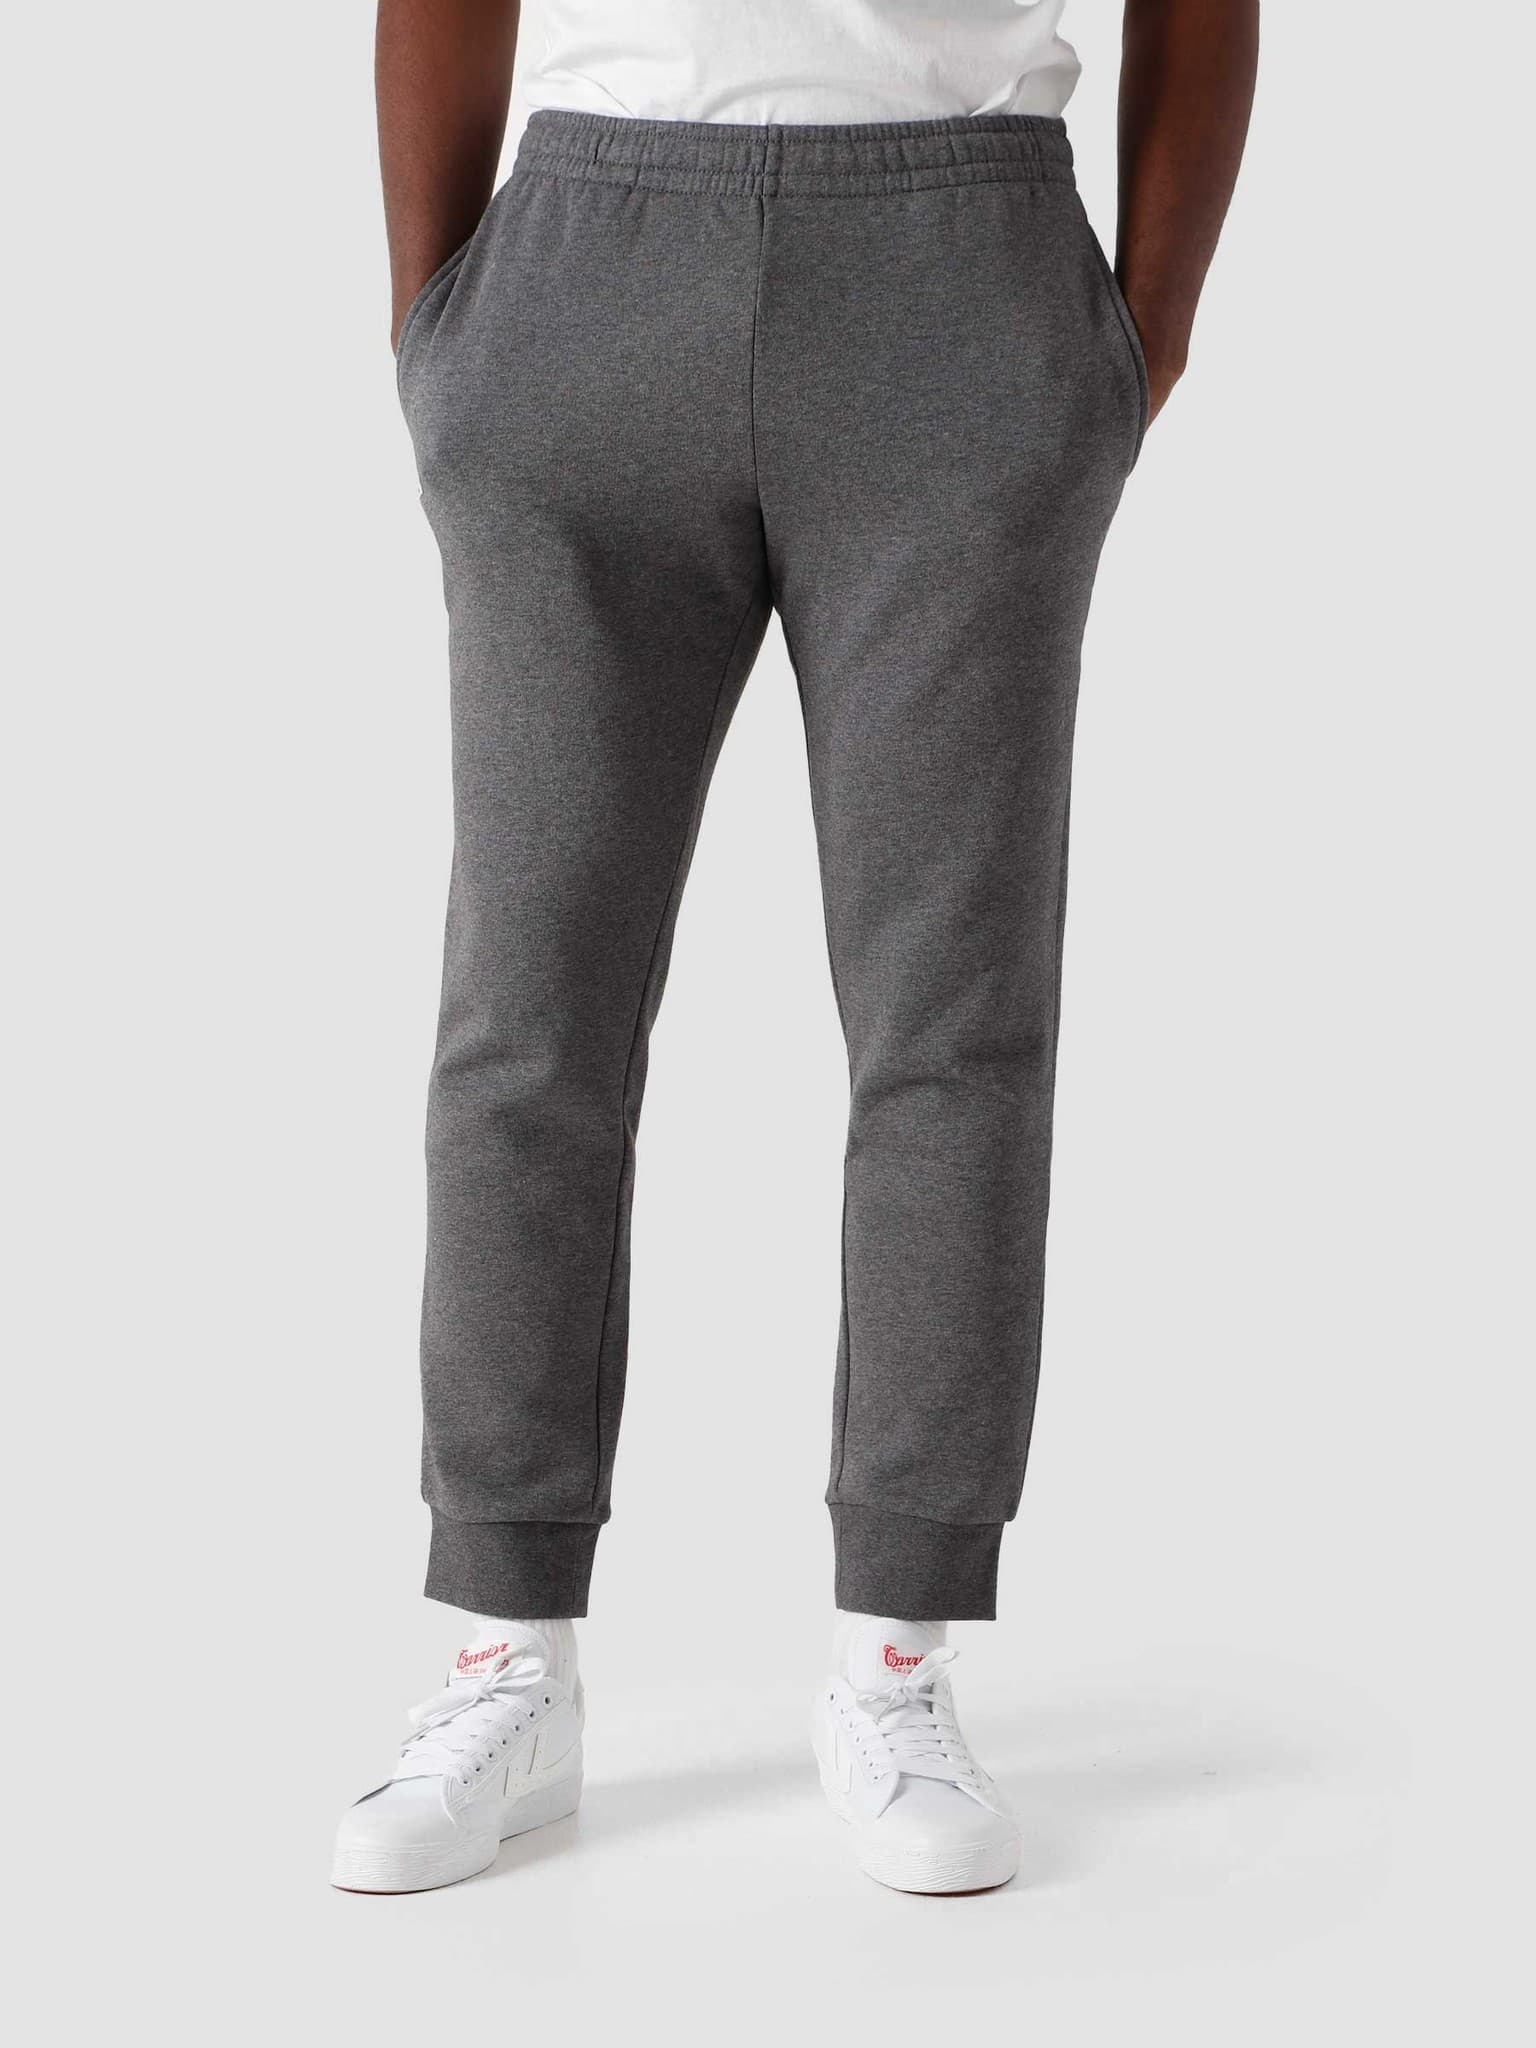 1HW2 Men's Tracksuit Trousers Pitch Chine XH9507-11